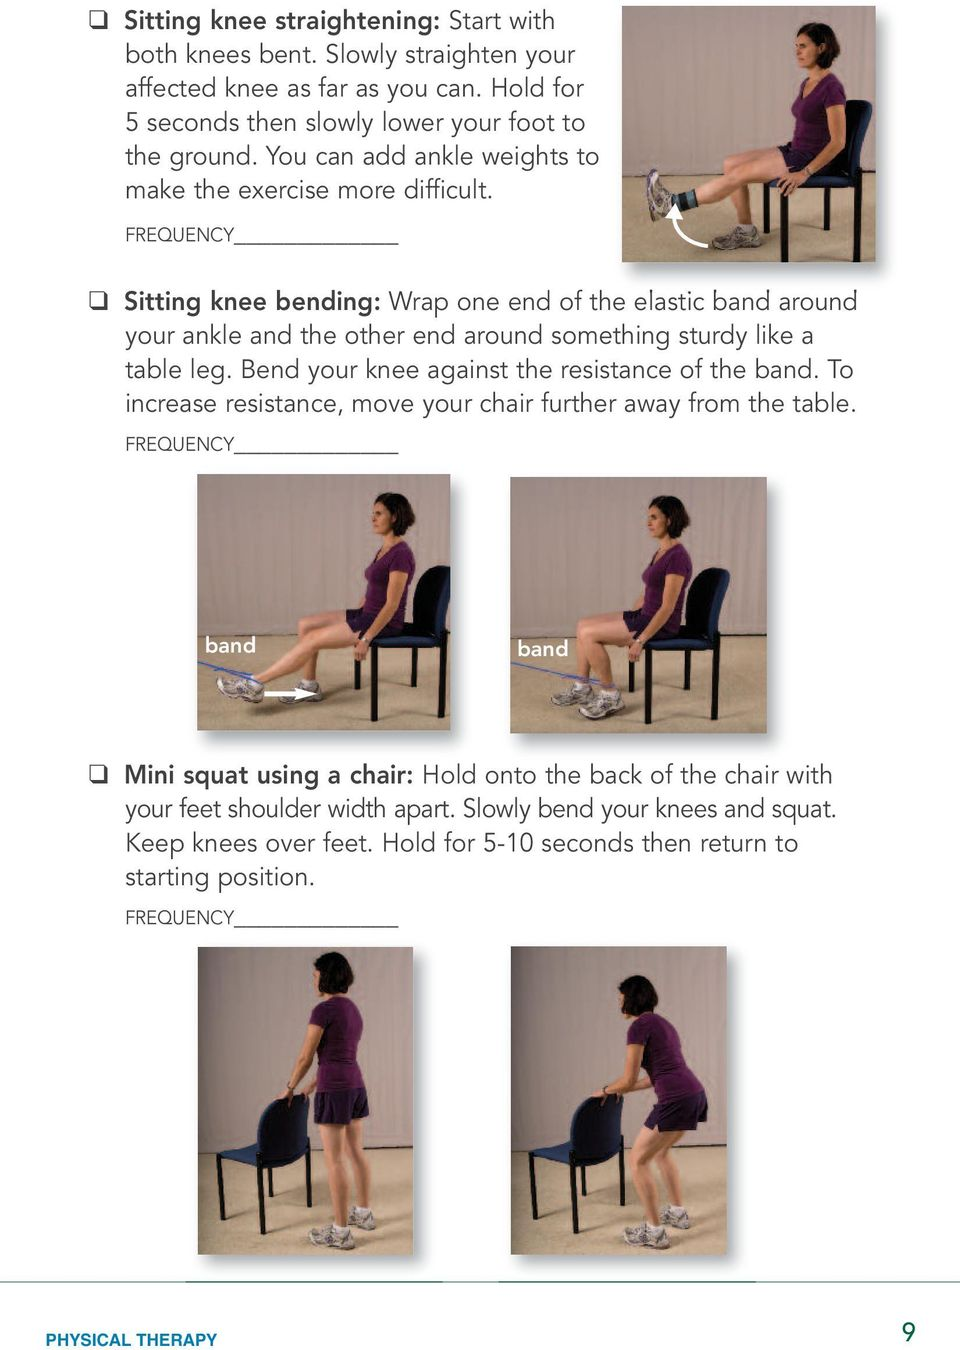 Sitting knee bending: Wrap one end of the elastic band around your ankle and the other end around something sturdy like a table leg.